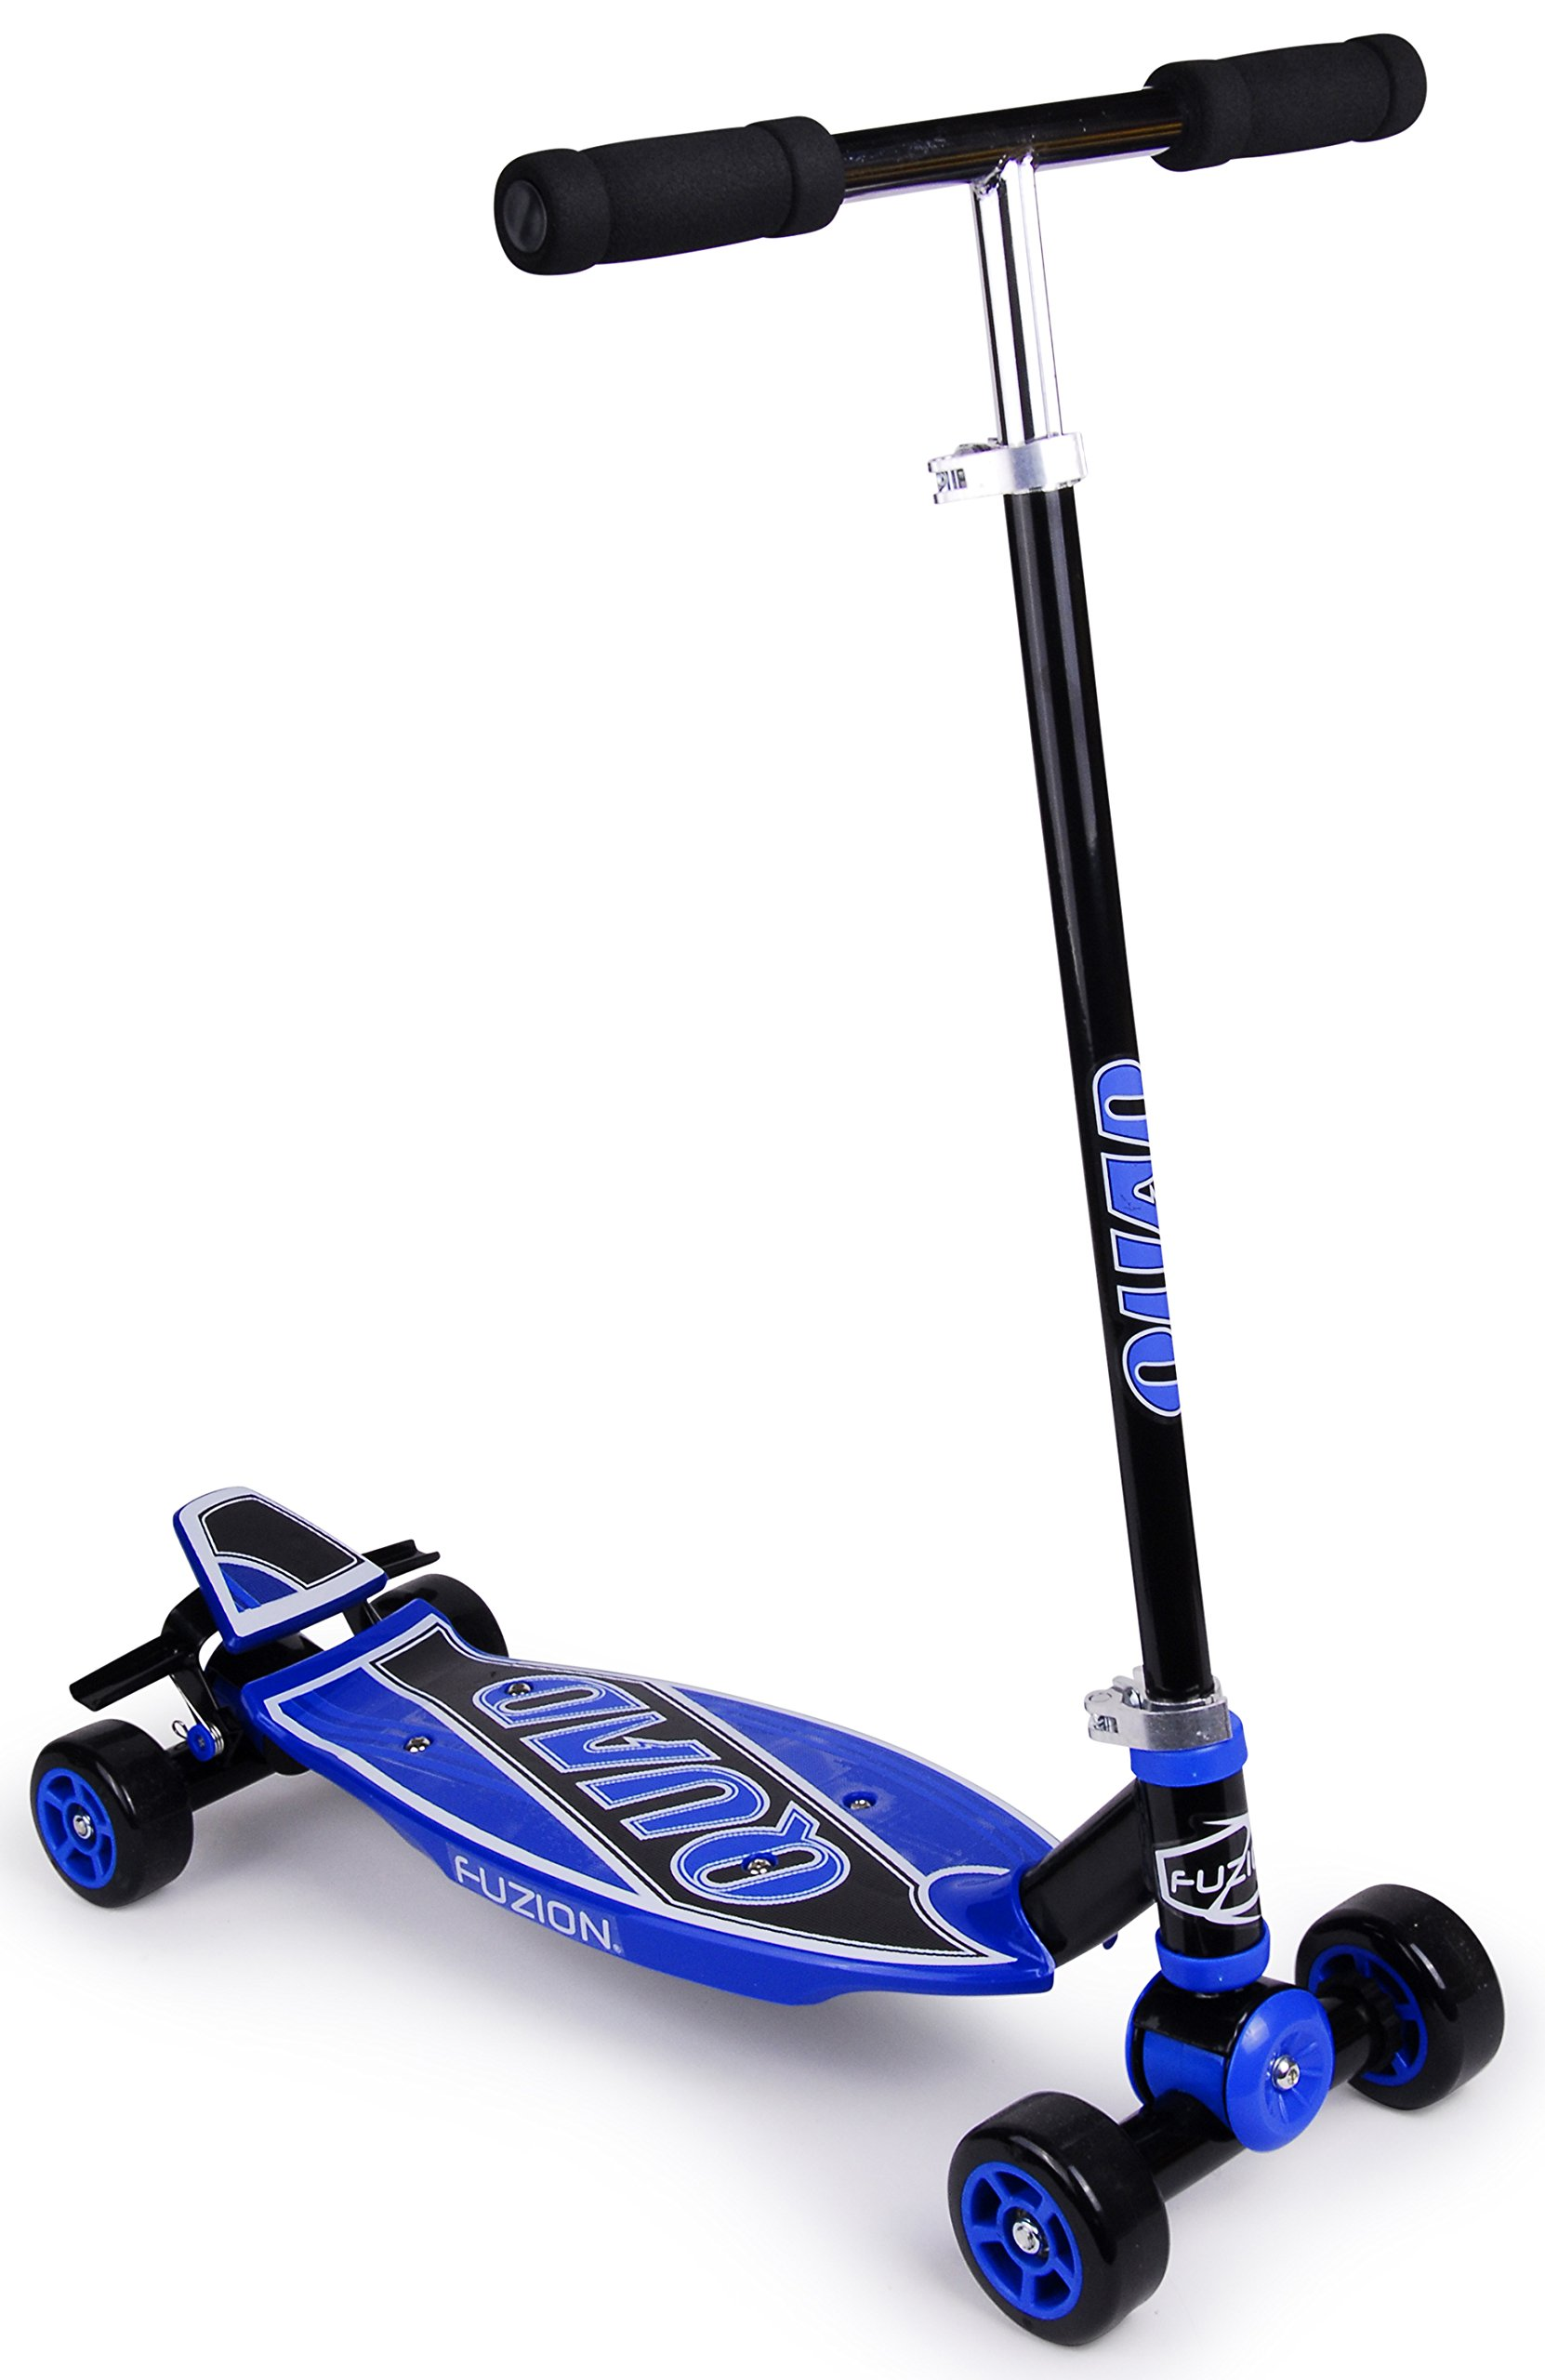 Fuzion Quad 4 Wheel Carving Kids Scooter